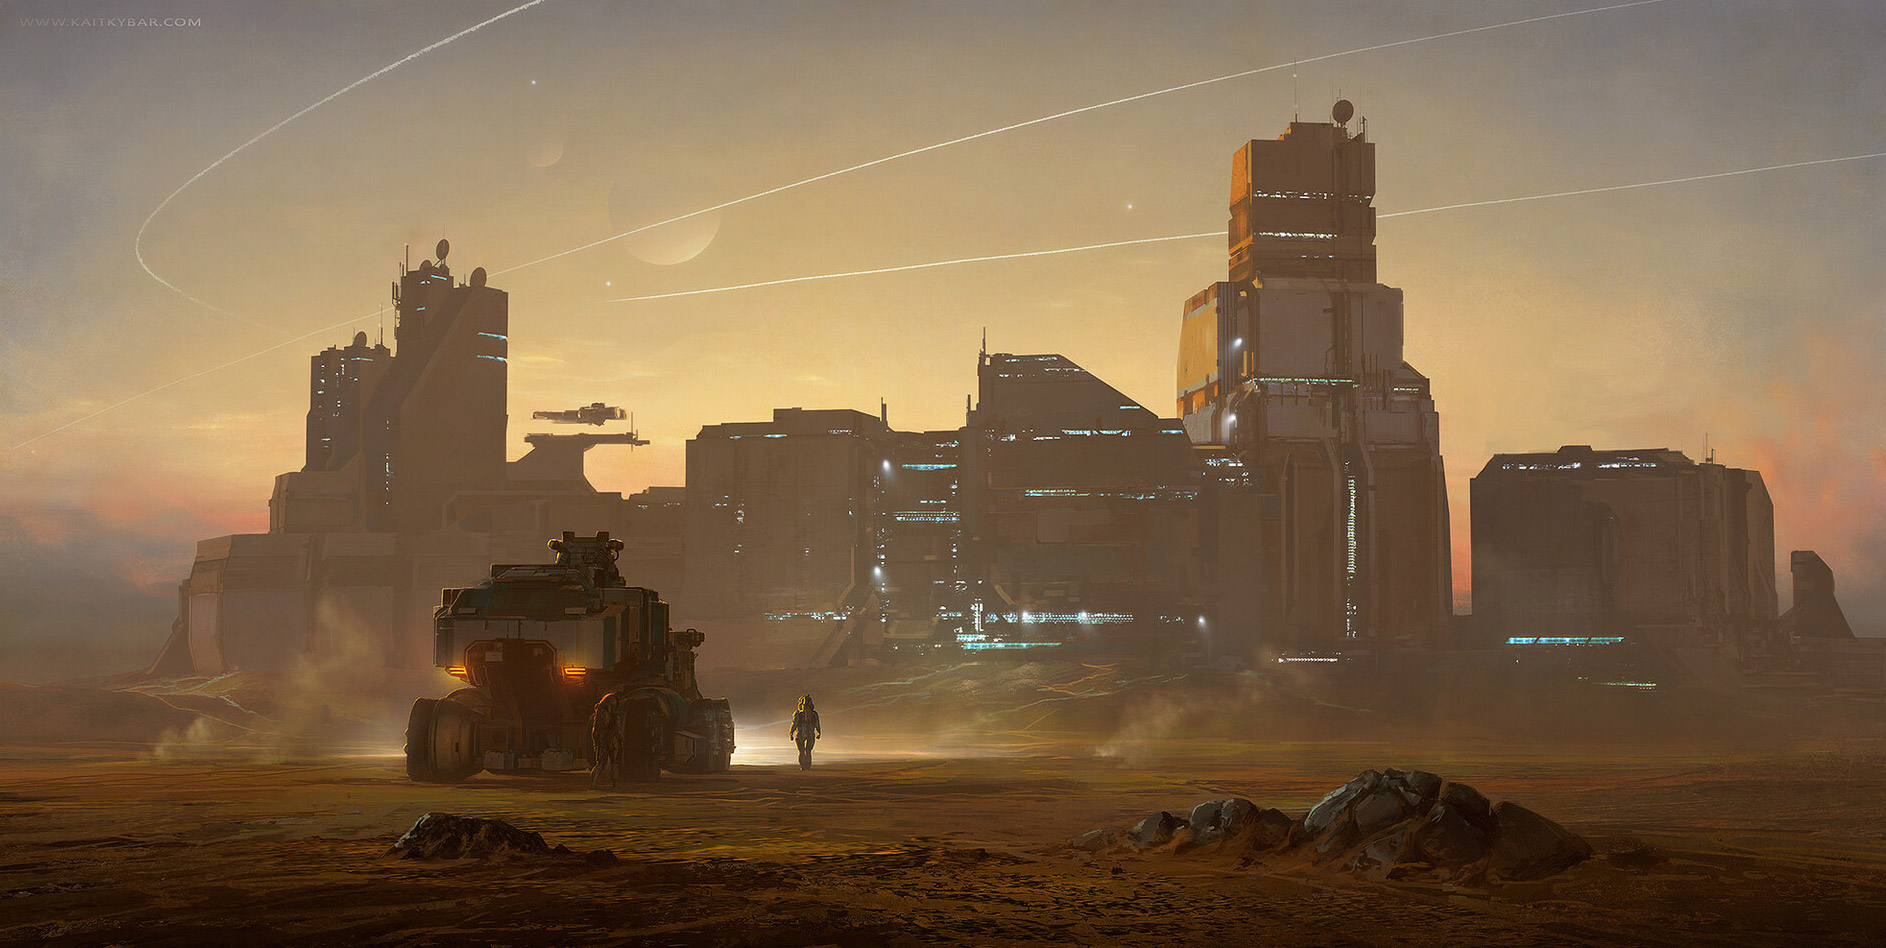 The Superb Sci-Fi Concept Art of Kait Kybar